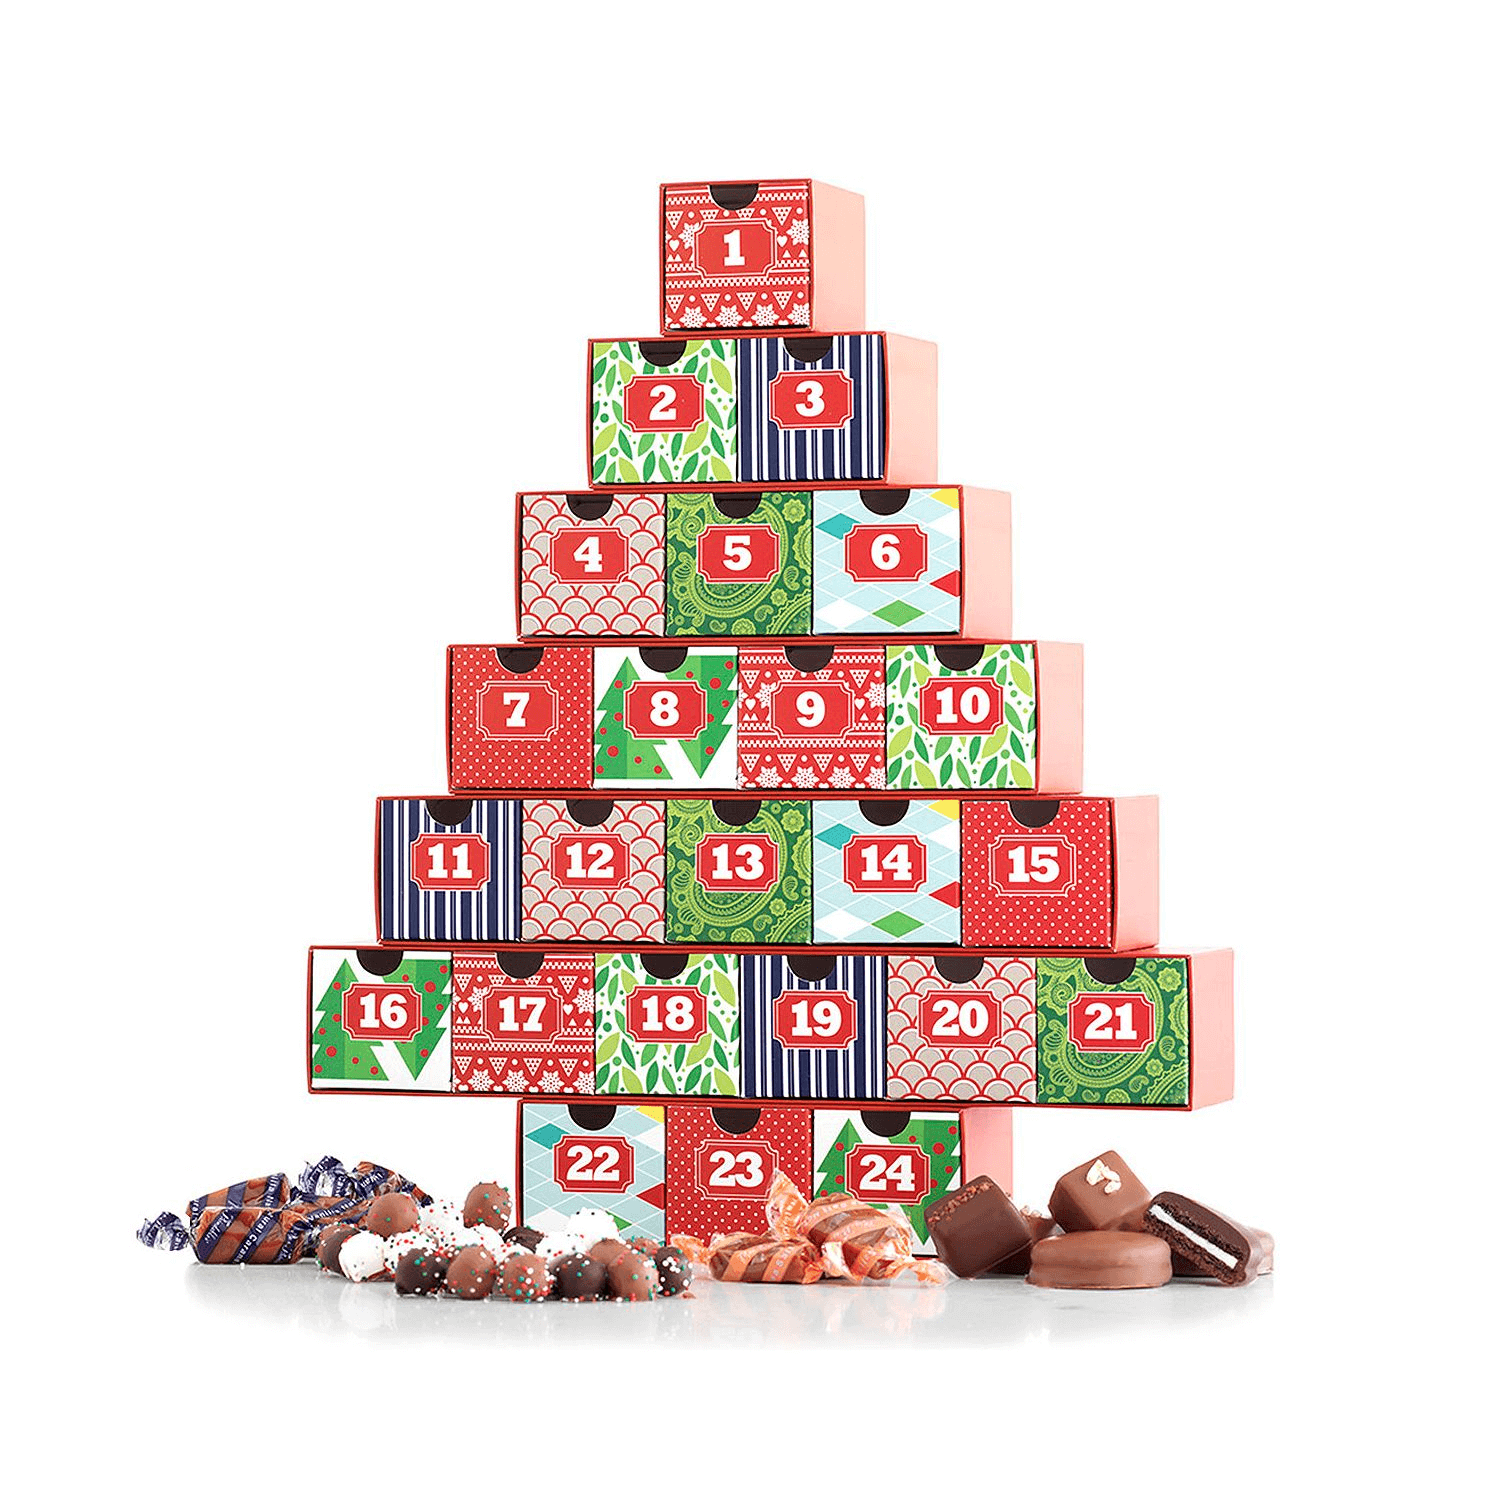 2017 Chocolate & Candy Advent Calendars For A Sweet